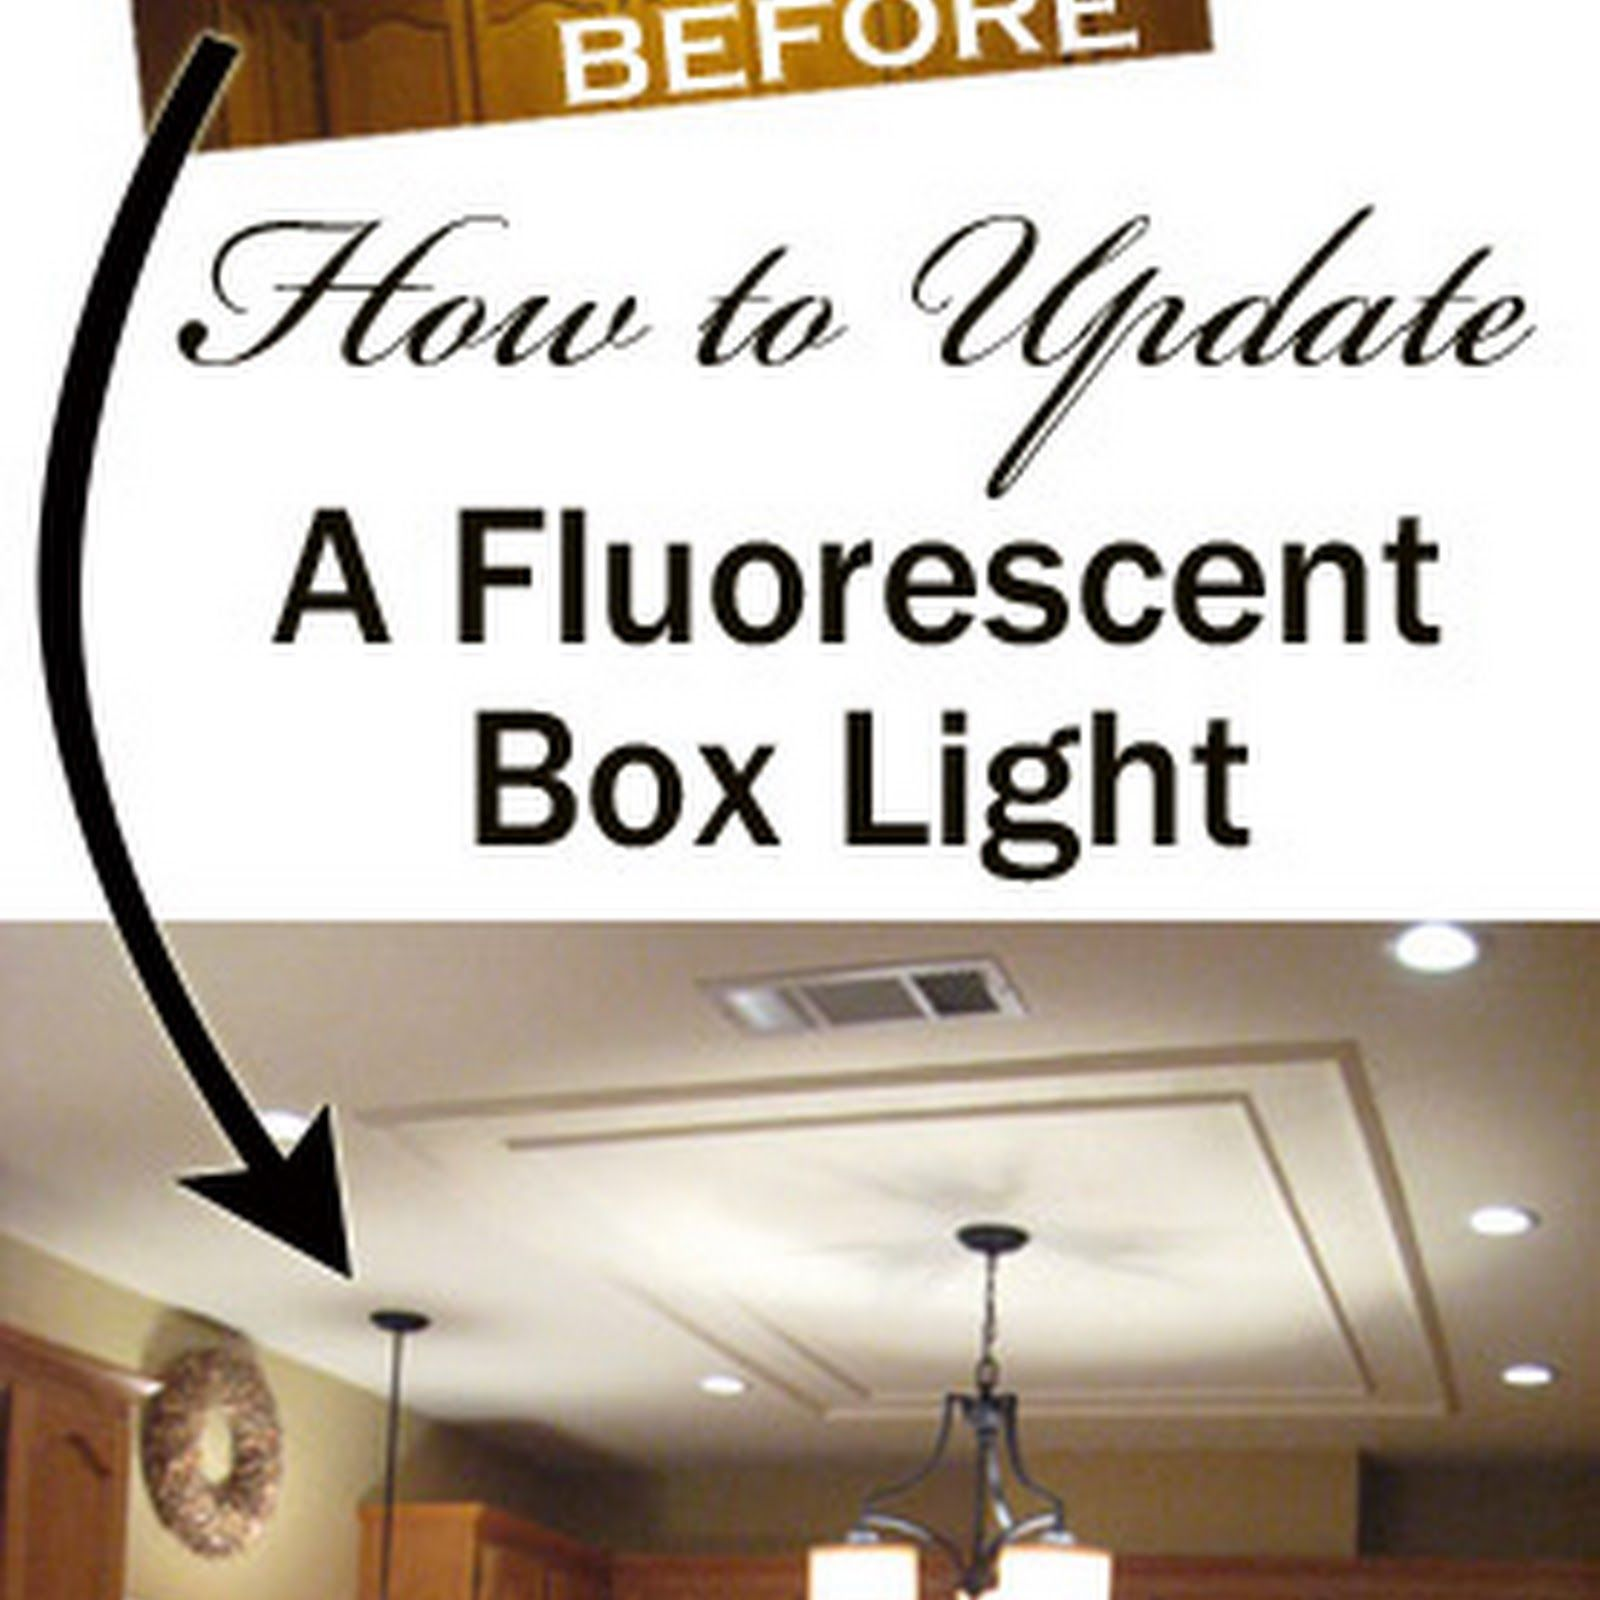 Fluorescent Kitchen Light Covers A Great Idea For Updating The Ugly Fluorescent Light Box Without